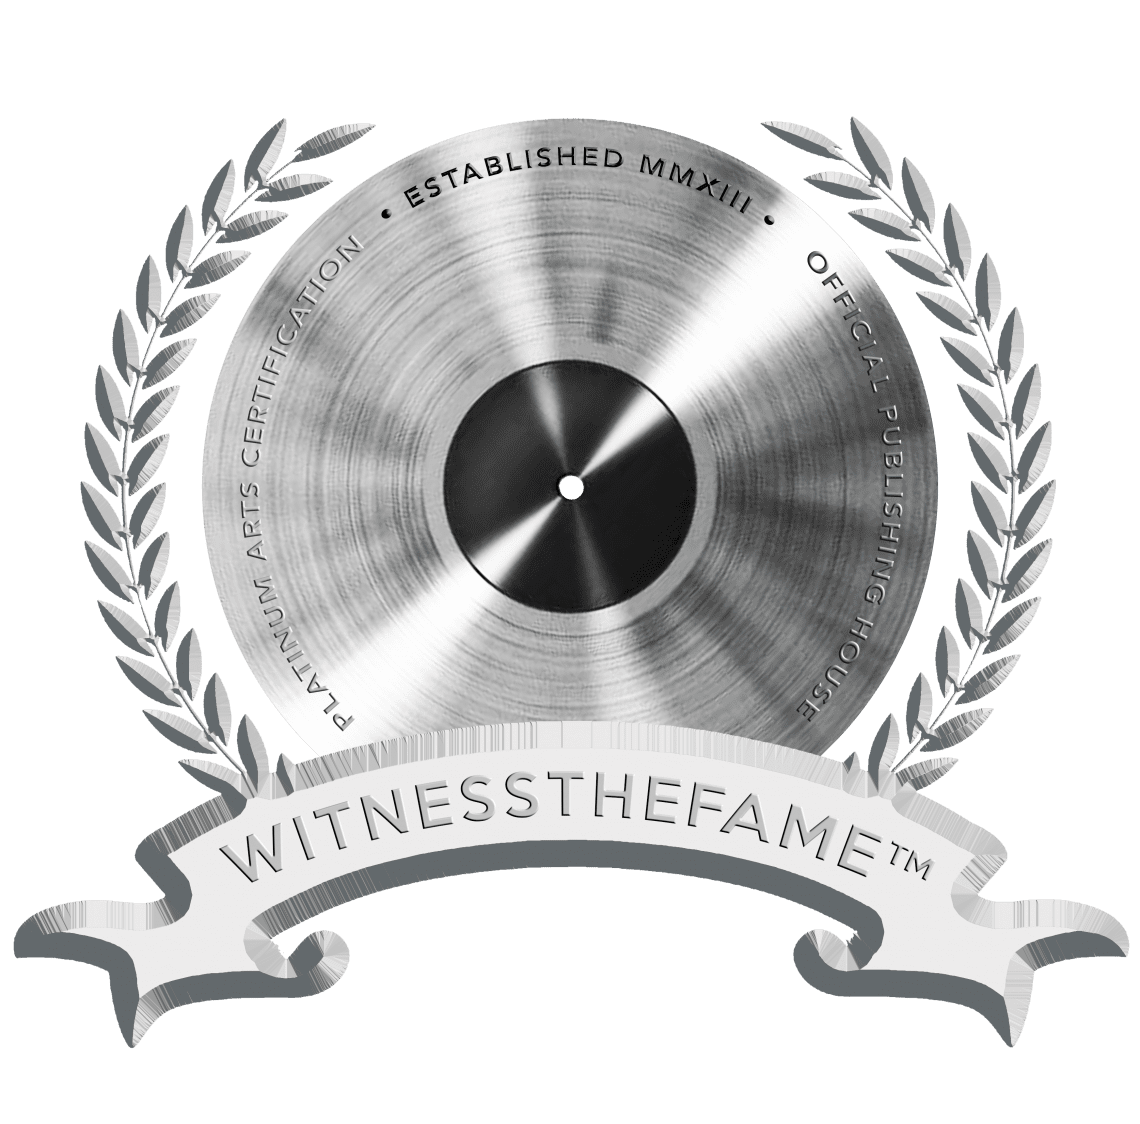 WITNESSTHEFAME PLATINUM BADGE